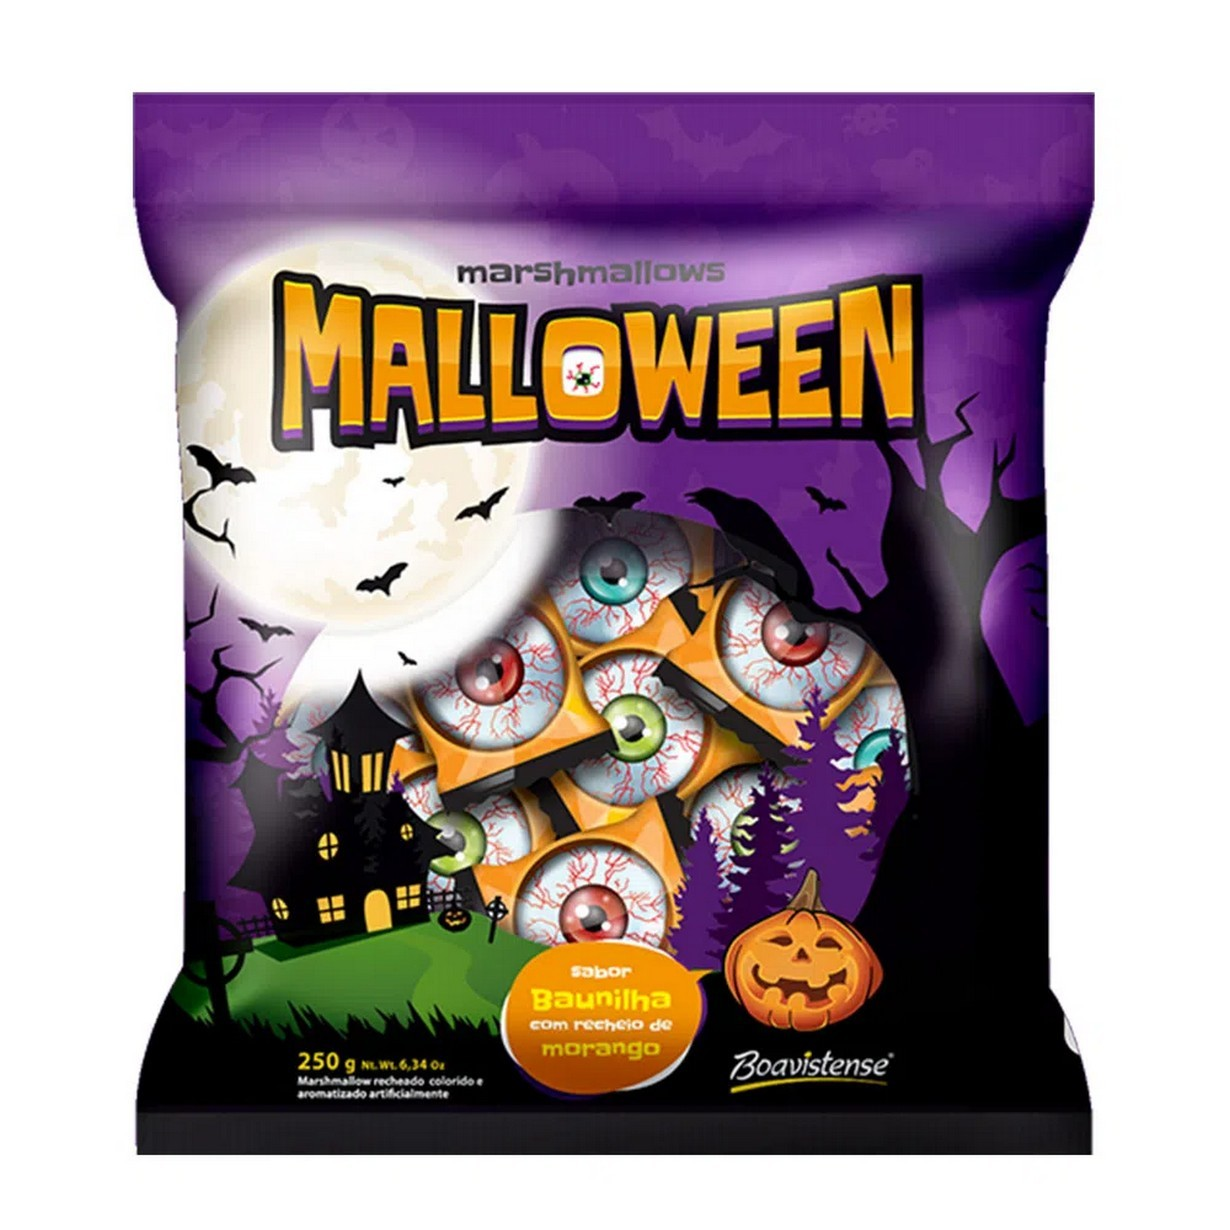 MARSHMALLOW MALLOWEEN PC250G BOAVISTENSE